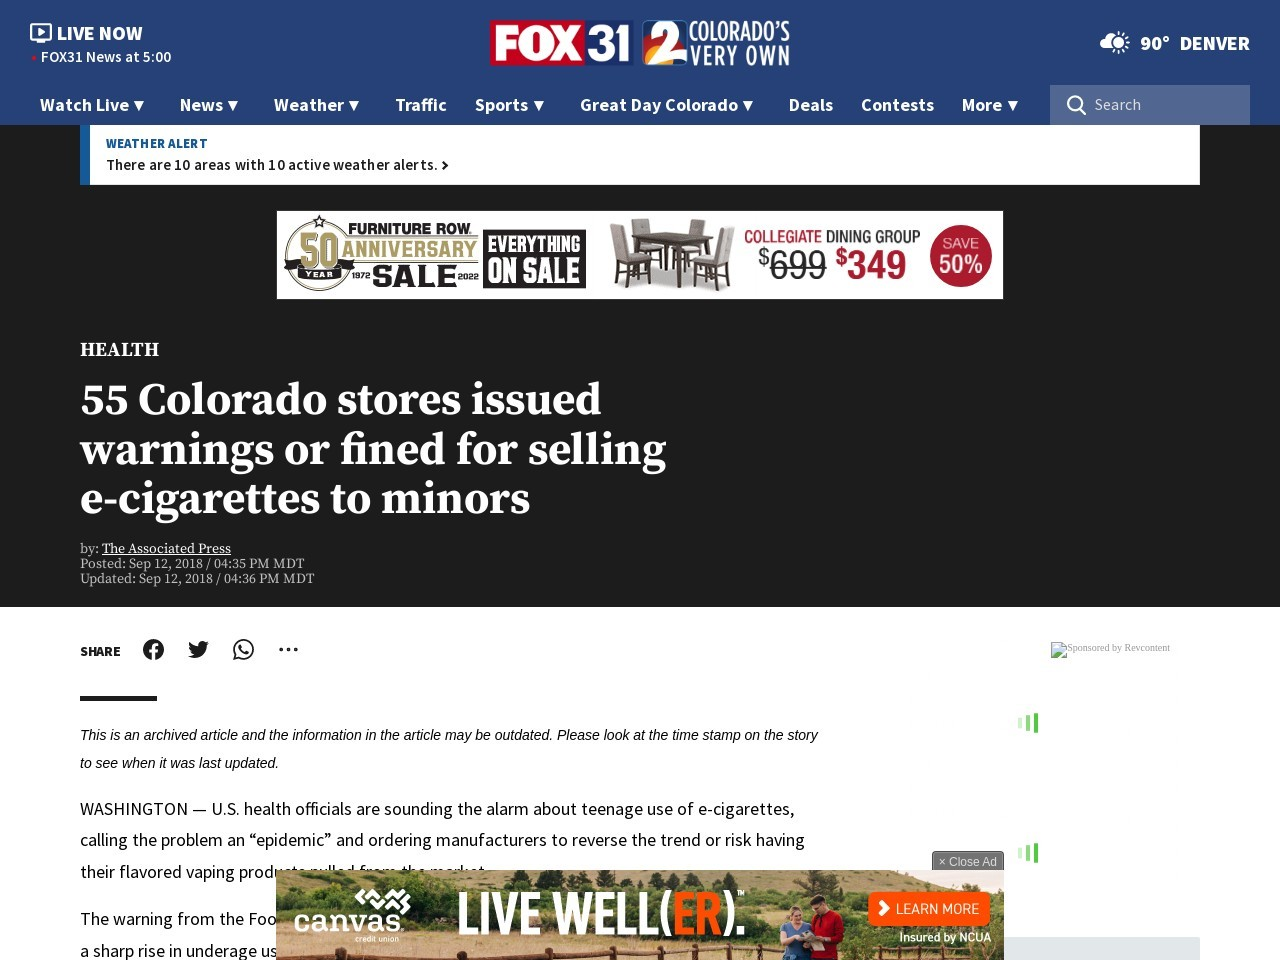 55 Colorado stores issued warnings or fined for selling e-cigarettes to minors